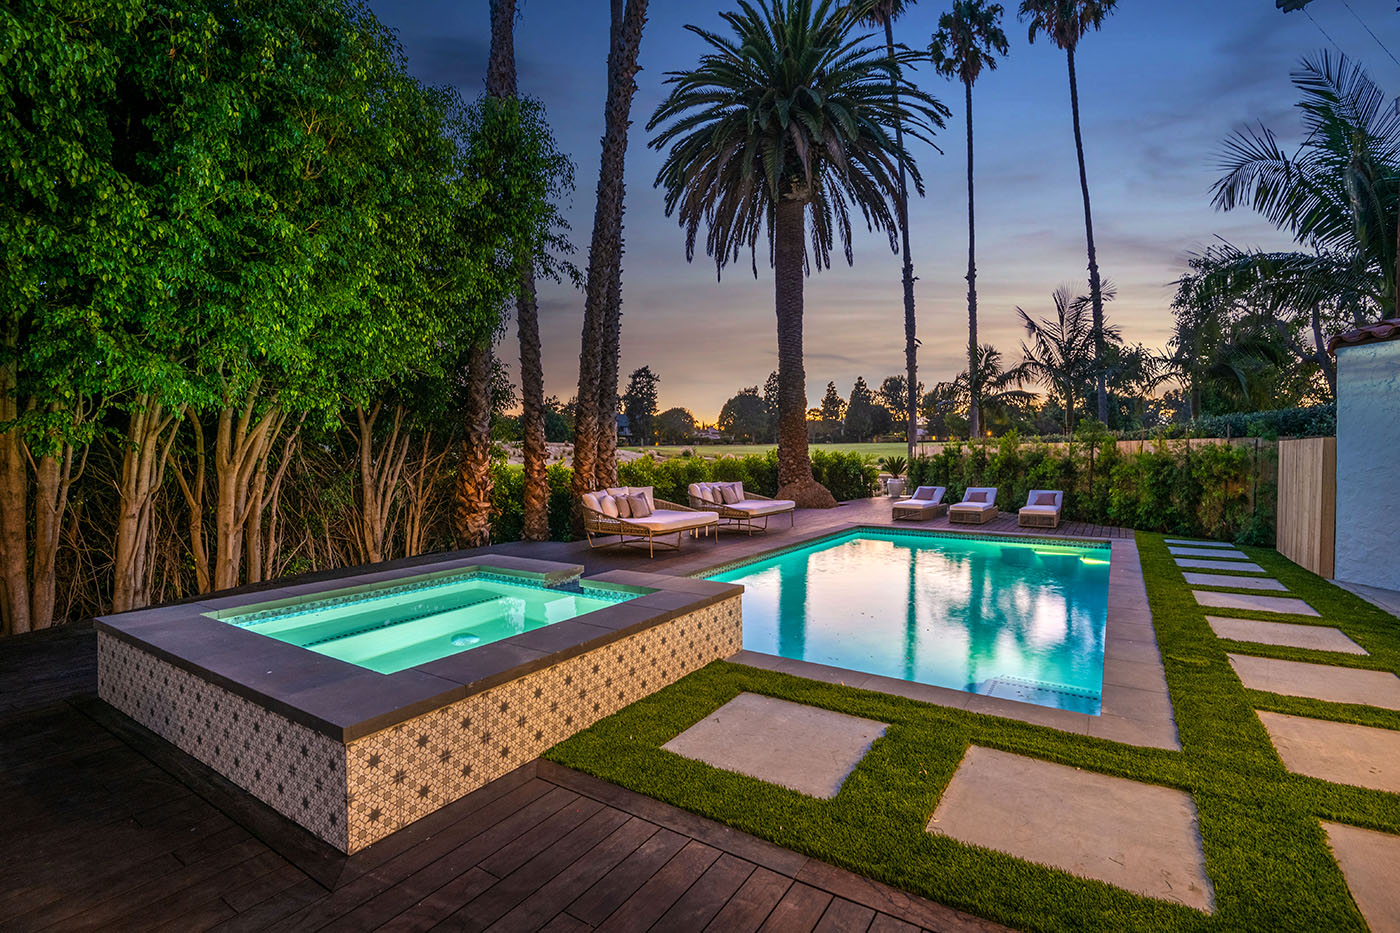 Kim Basinger's L.A. Confidential Home Selling For $7.495 Million